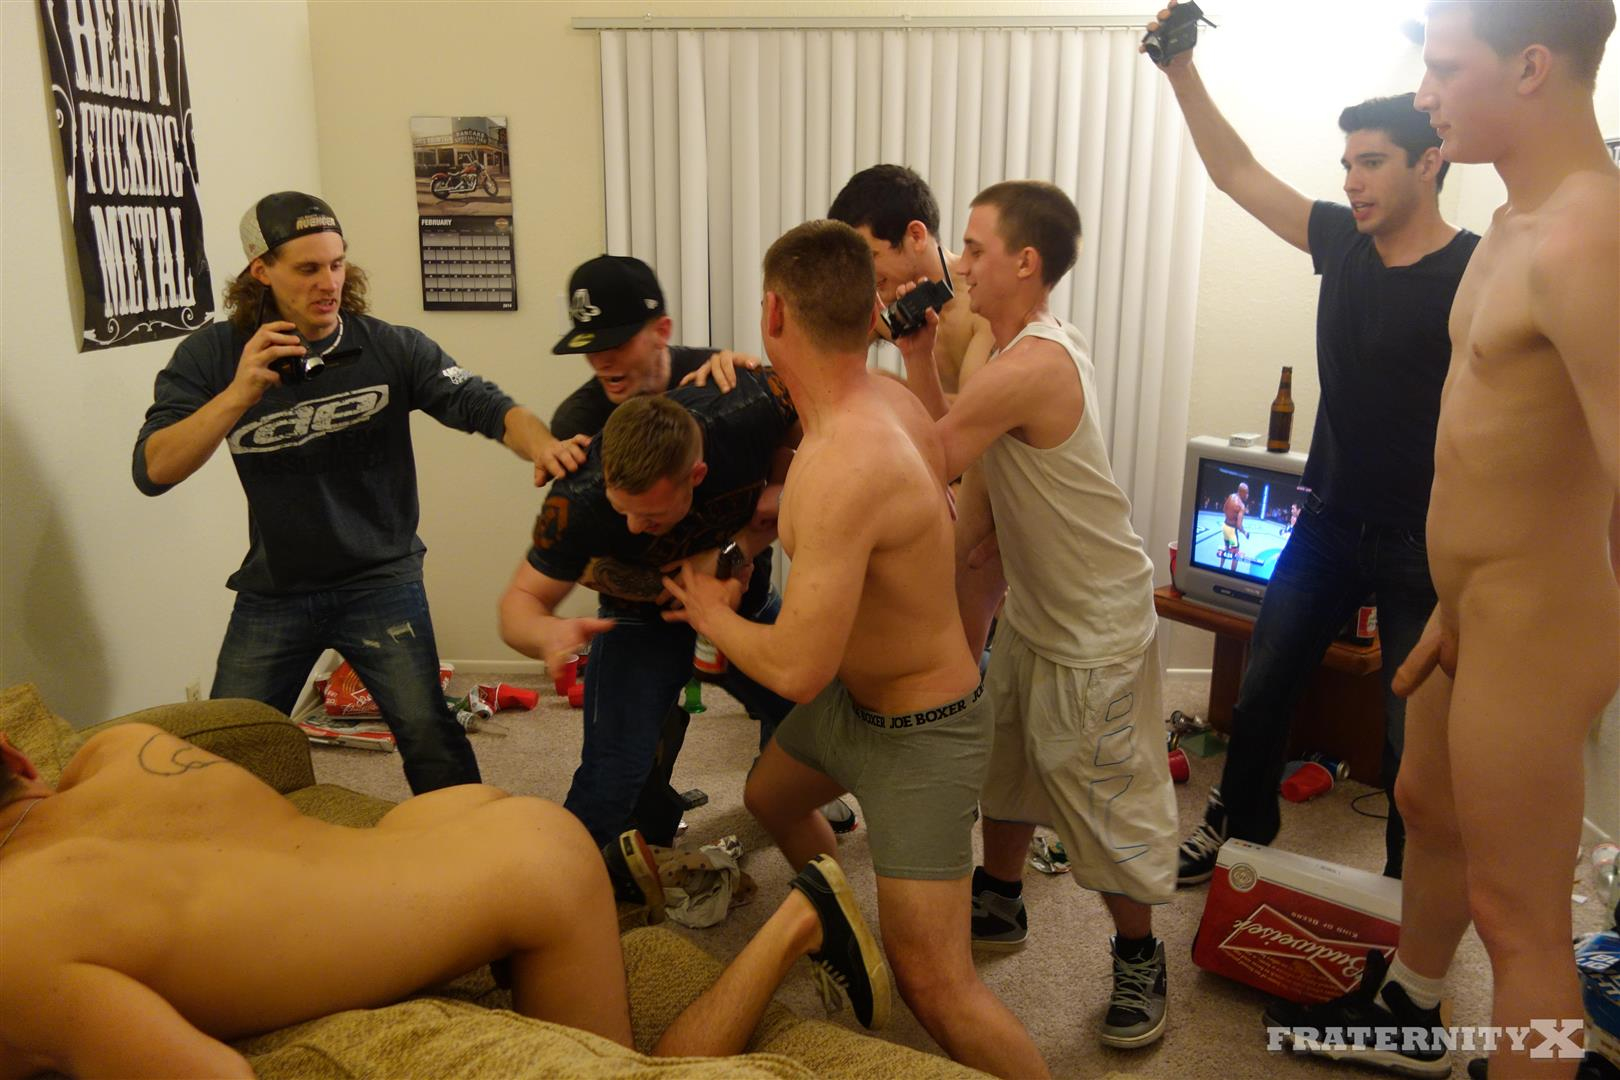 Fraternity-X-Brad-Pledge-Takes-5-Bareback-Cocks-Up-The-Ass-Amateur-Gay-Porn-48 Fraternity Pledge Takes 5 Bareback Cocks Up The Ass